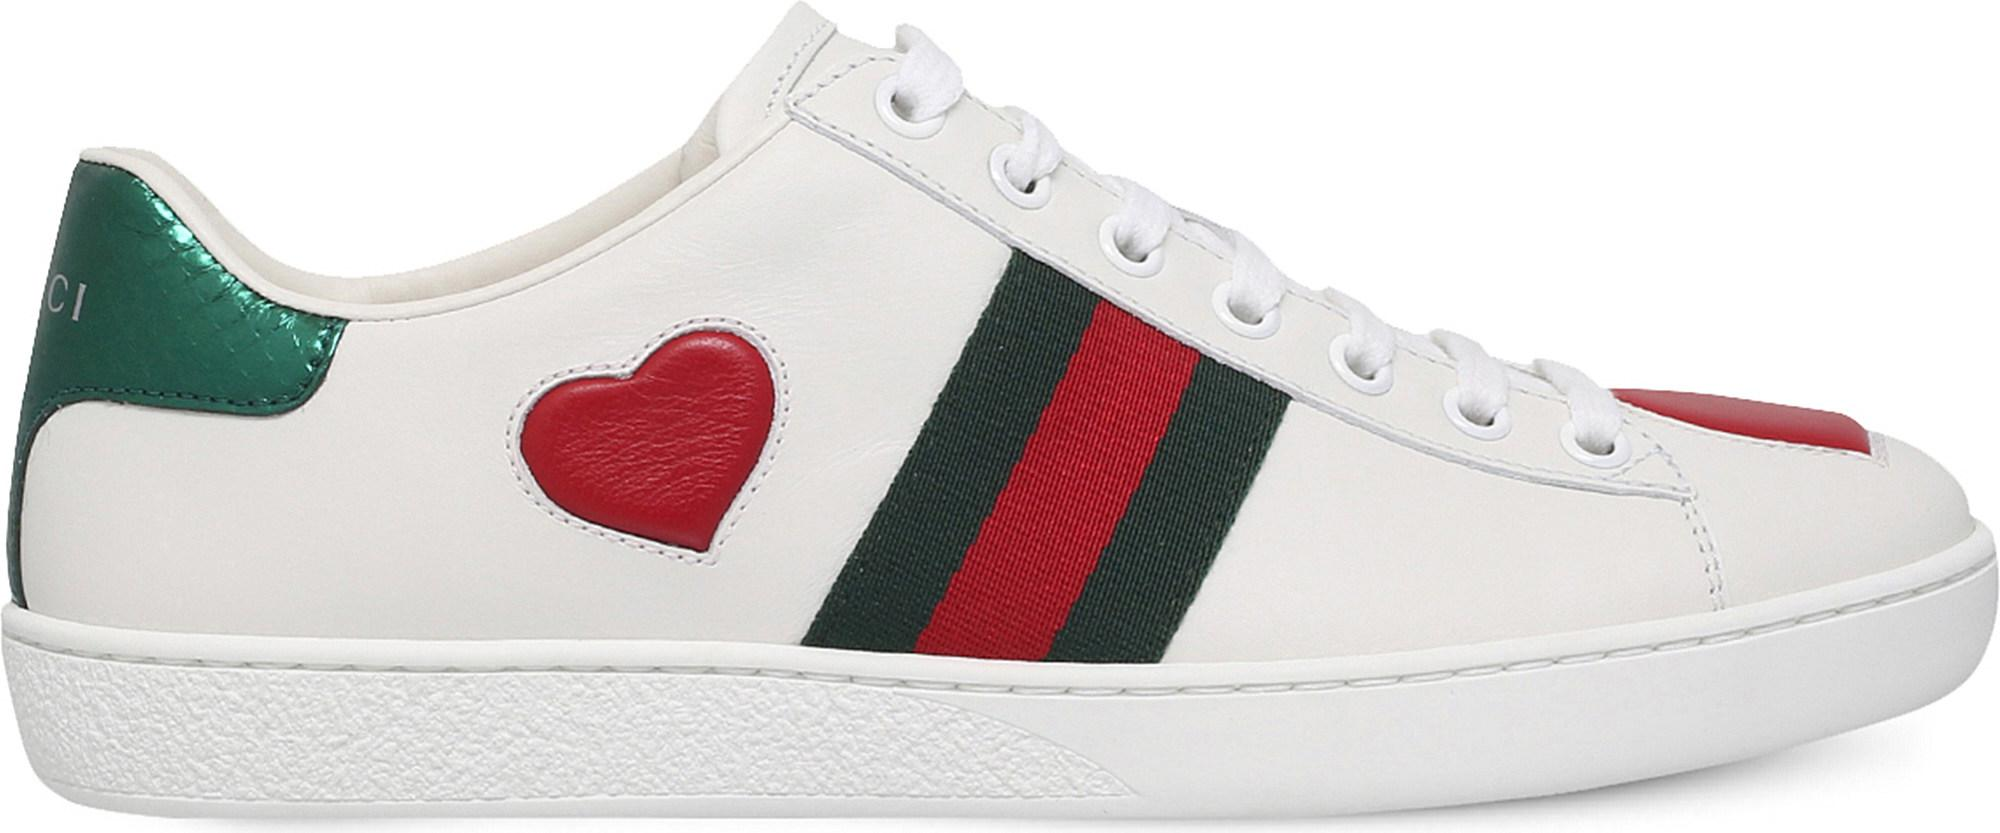 ff7eb113698 Lyst - Gucci New Ace Heart-detail Leather Trainers - Save 12%